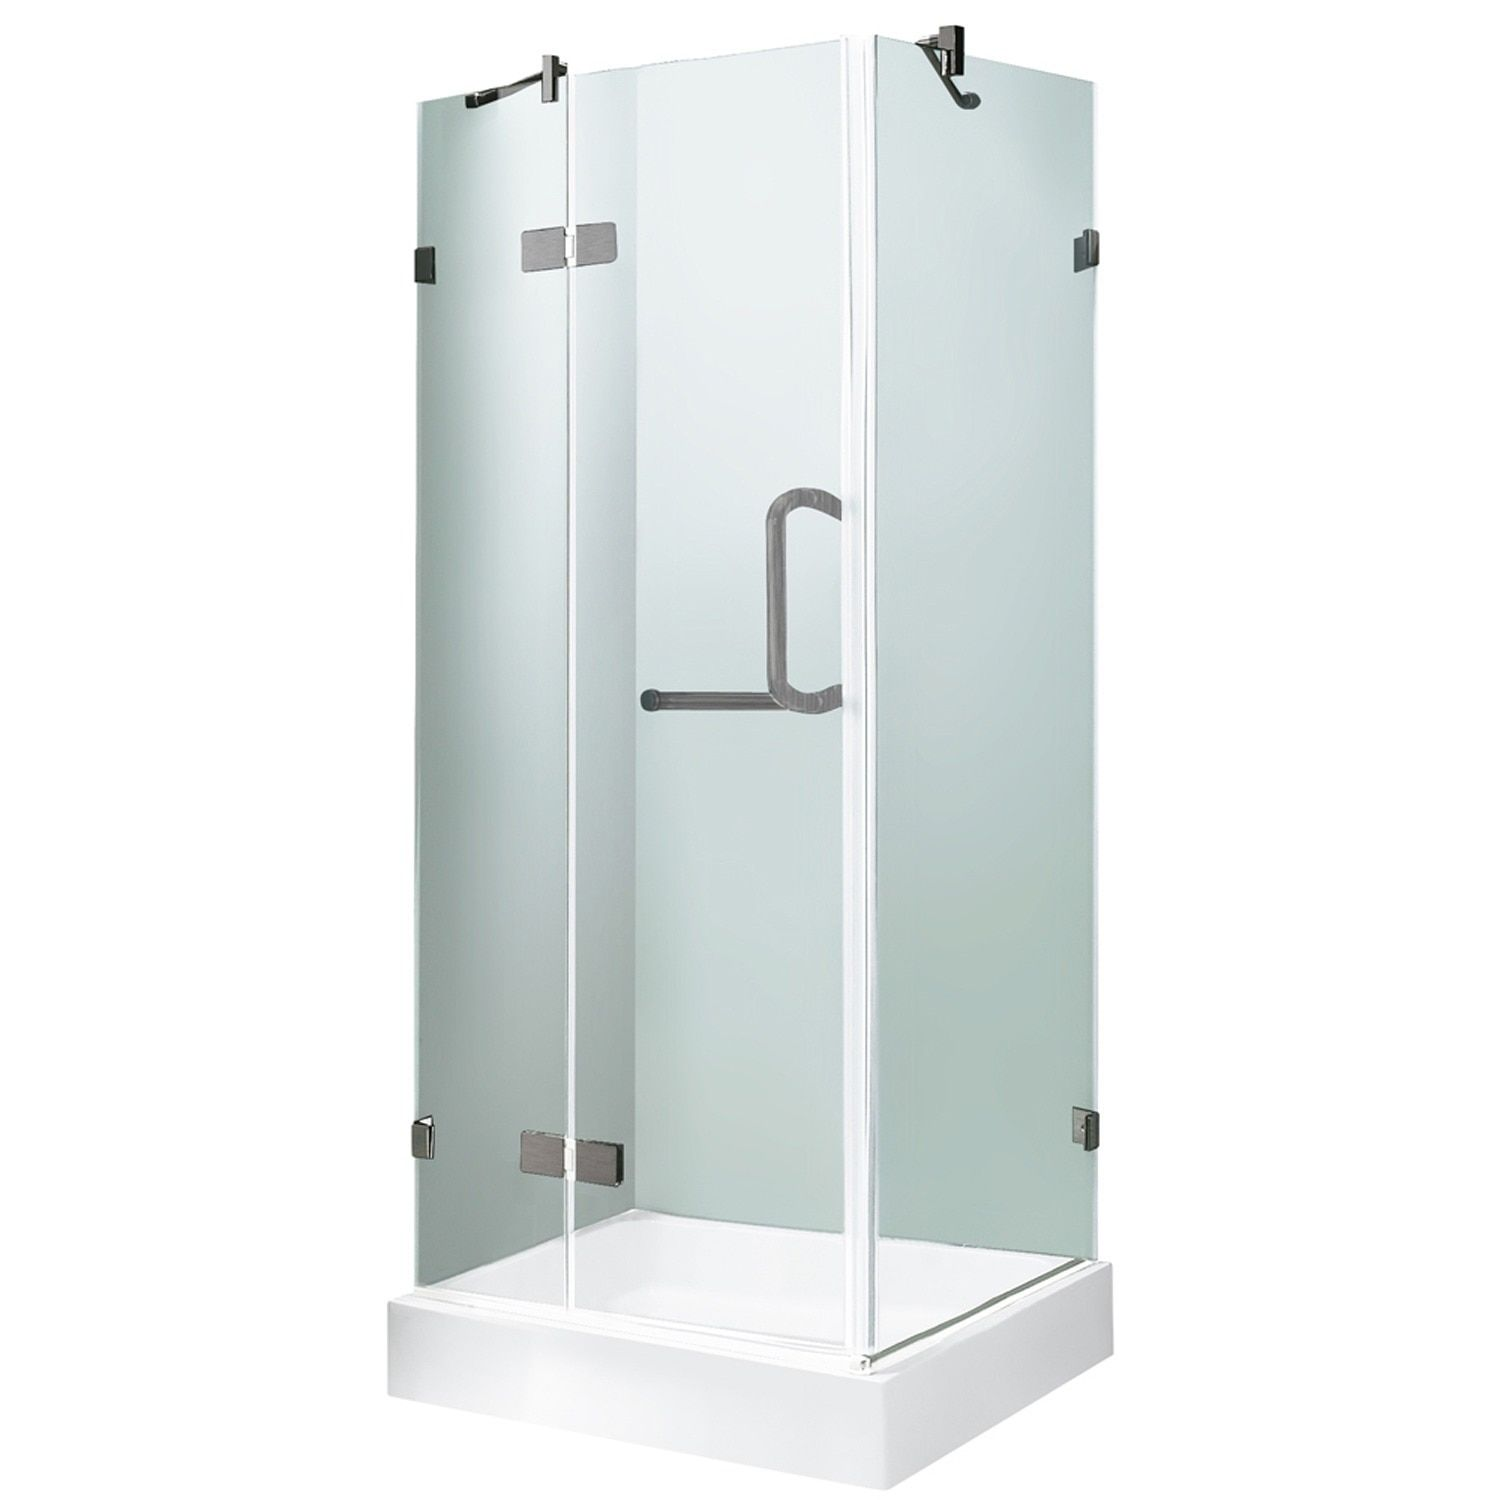 ceramic clear towel dish chrome glass varnished seats jet small marble modern clean polished door wooded casement with tile plafondlamp trim one bars in doors full toilet shower size round bathroom vanity rainfall standing part bathtub how floor white tub free stall frameless hinged acrylic a windows of nickel contemporary soap showerhead vigo to